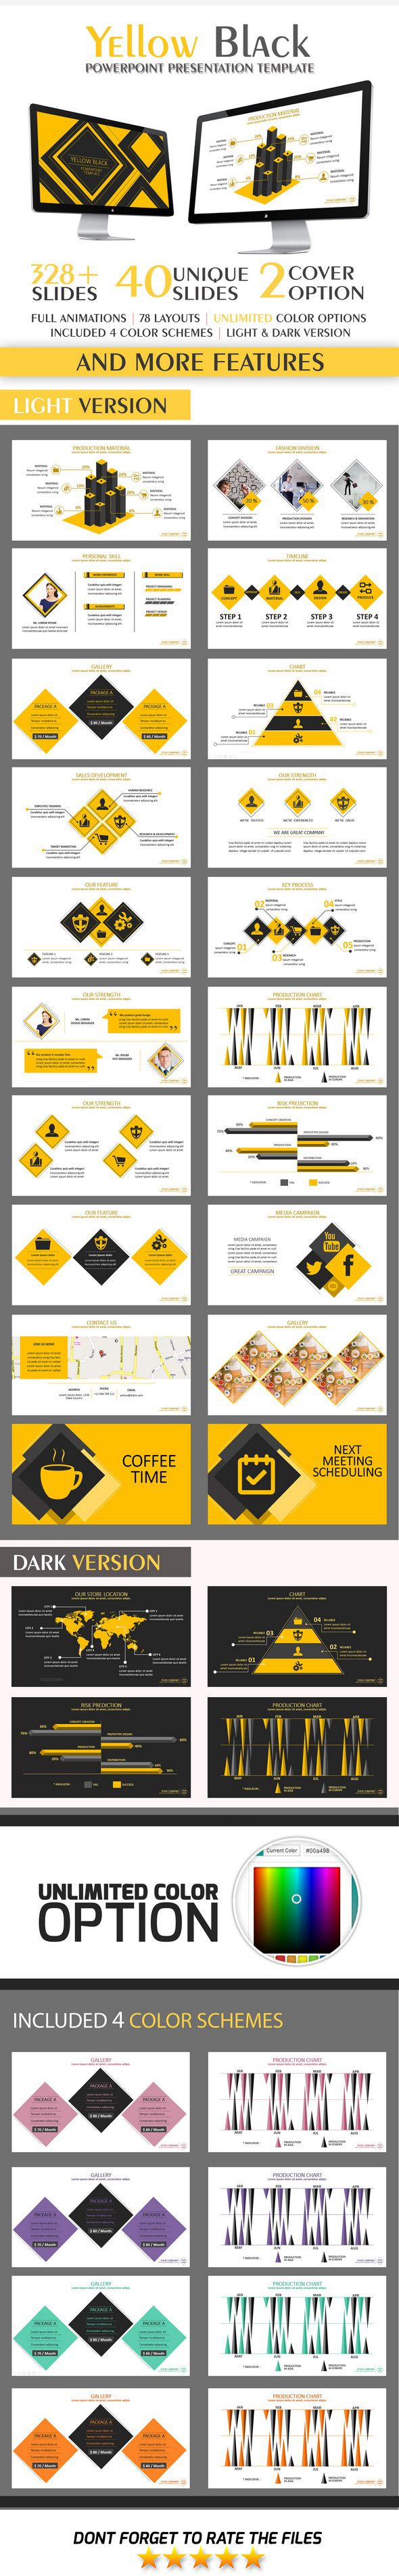 Yellow Black PowerPoint Template #design #slides Download: http://graphicriver.net/item/yellow-black-powerpoint-template/11561340?ref=ksioks